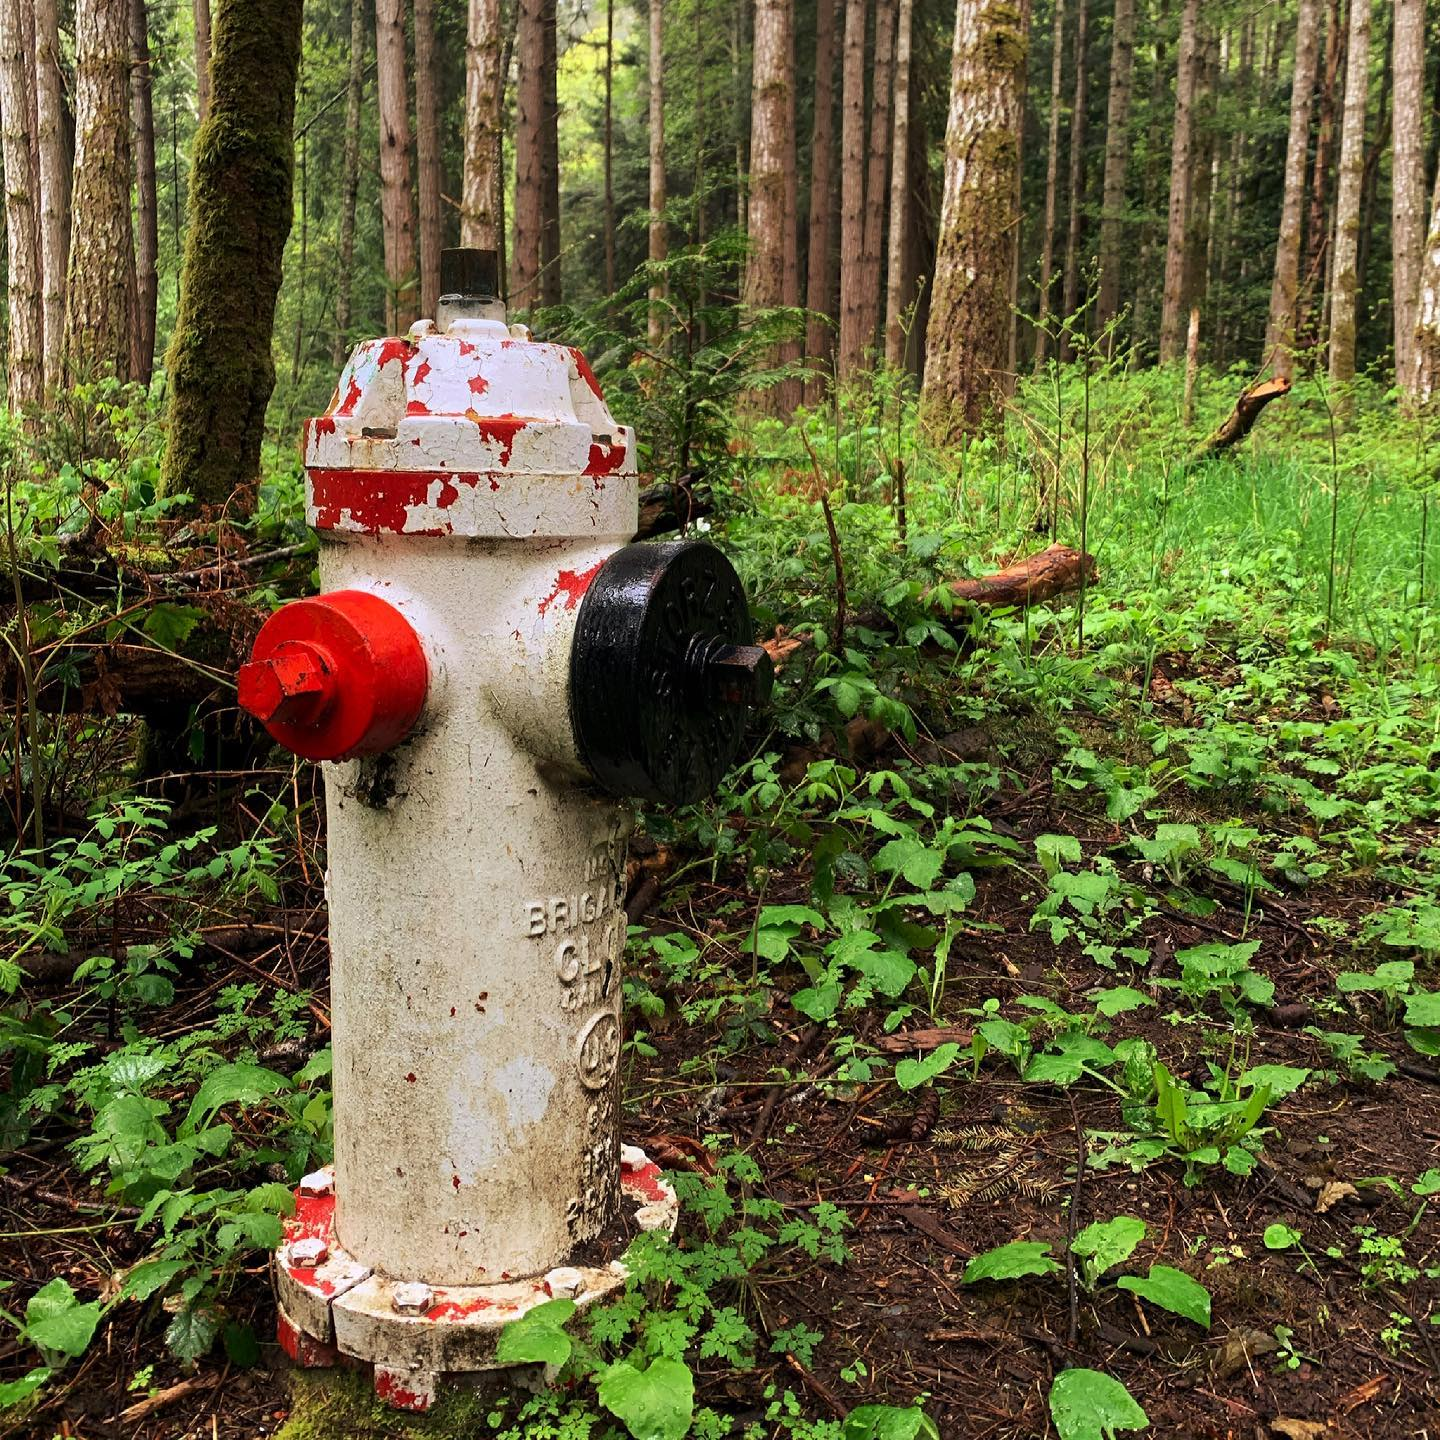 If you go out in the woods …#dogwalk #firehydrant #aged #photography #yyj #royalroads #royalroadsuniversity